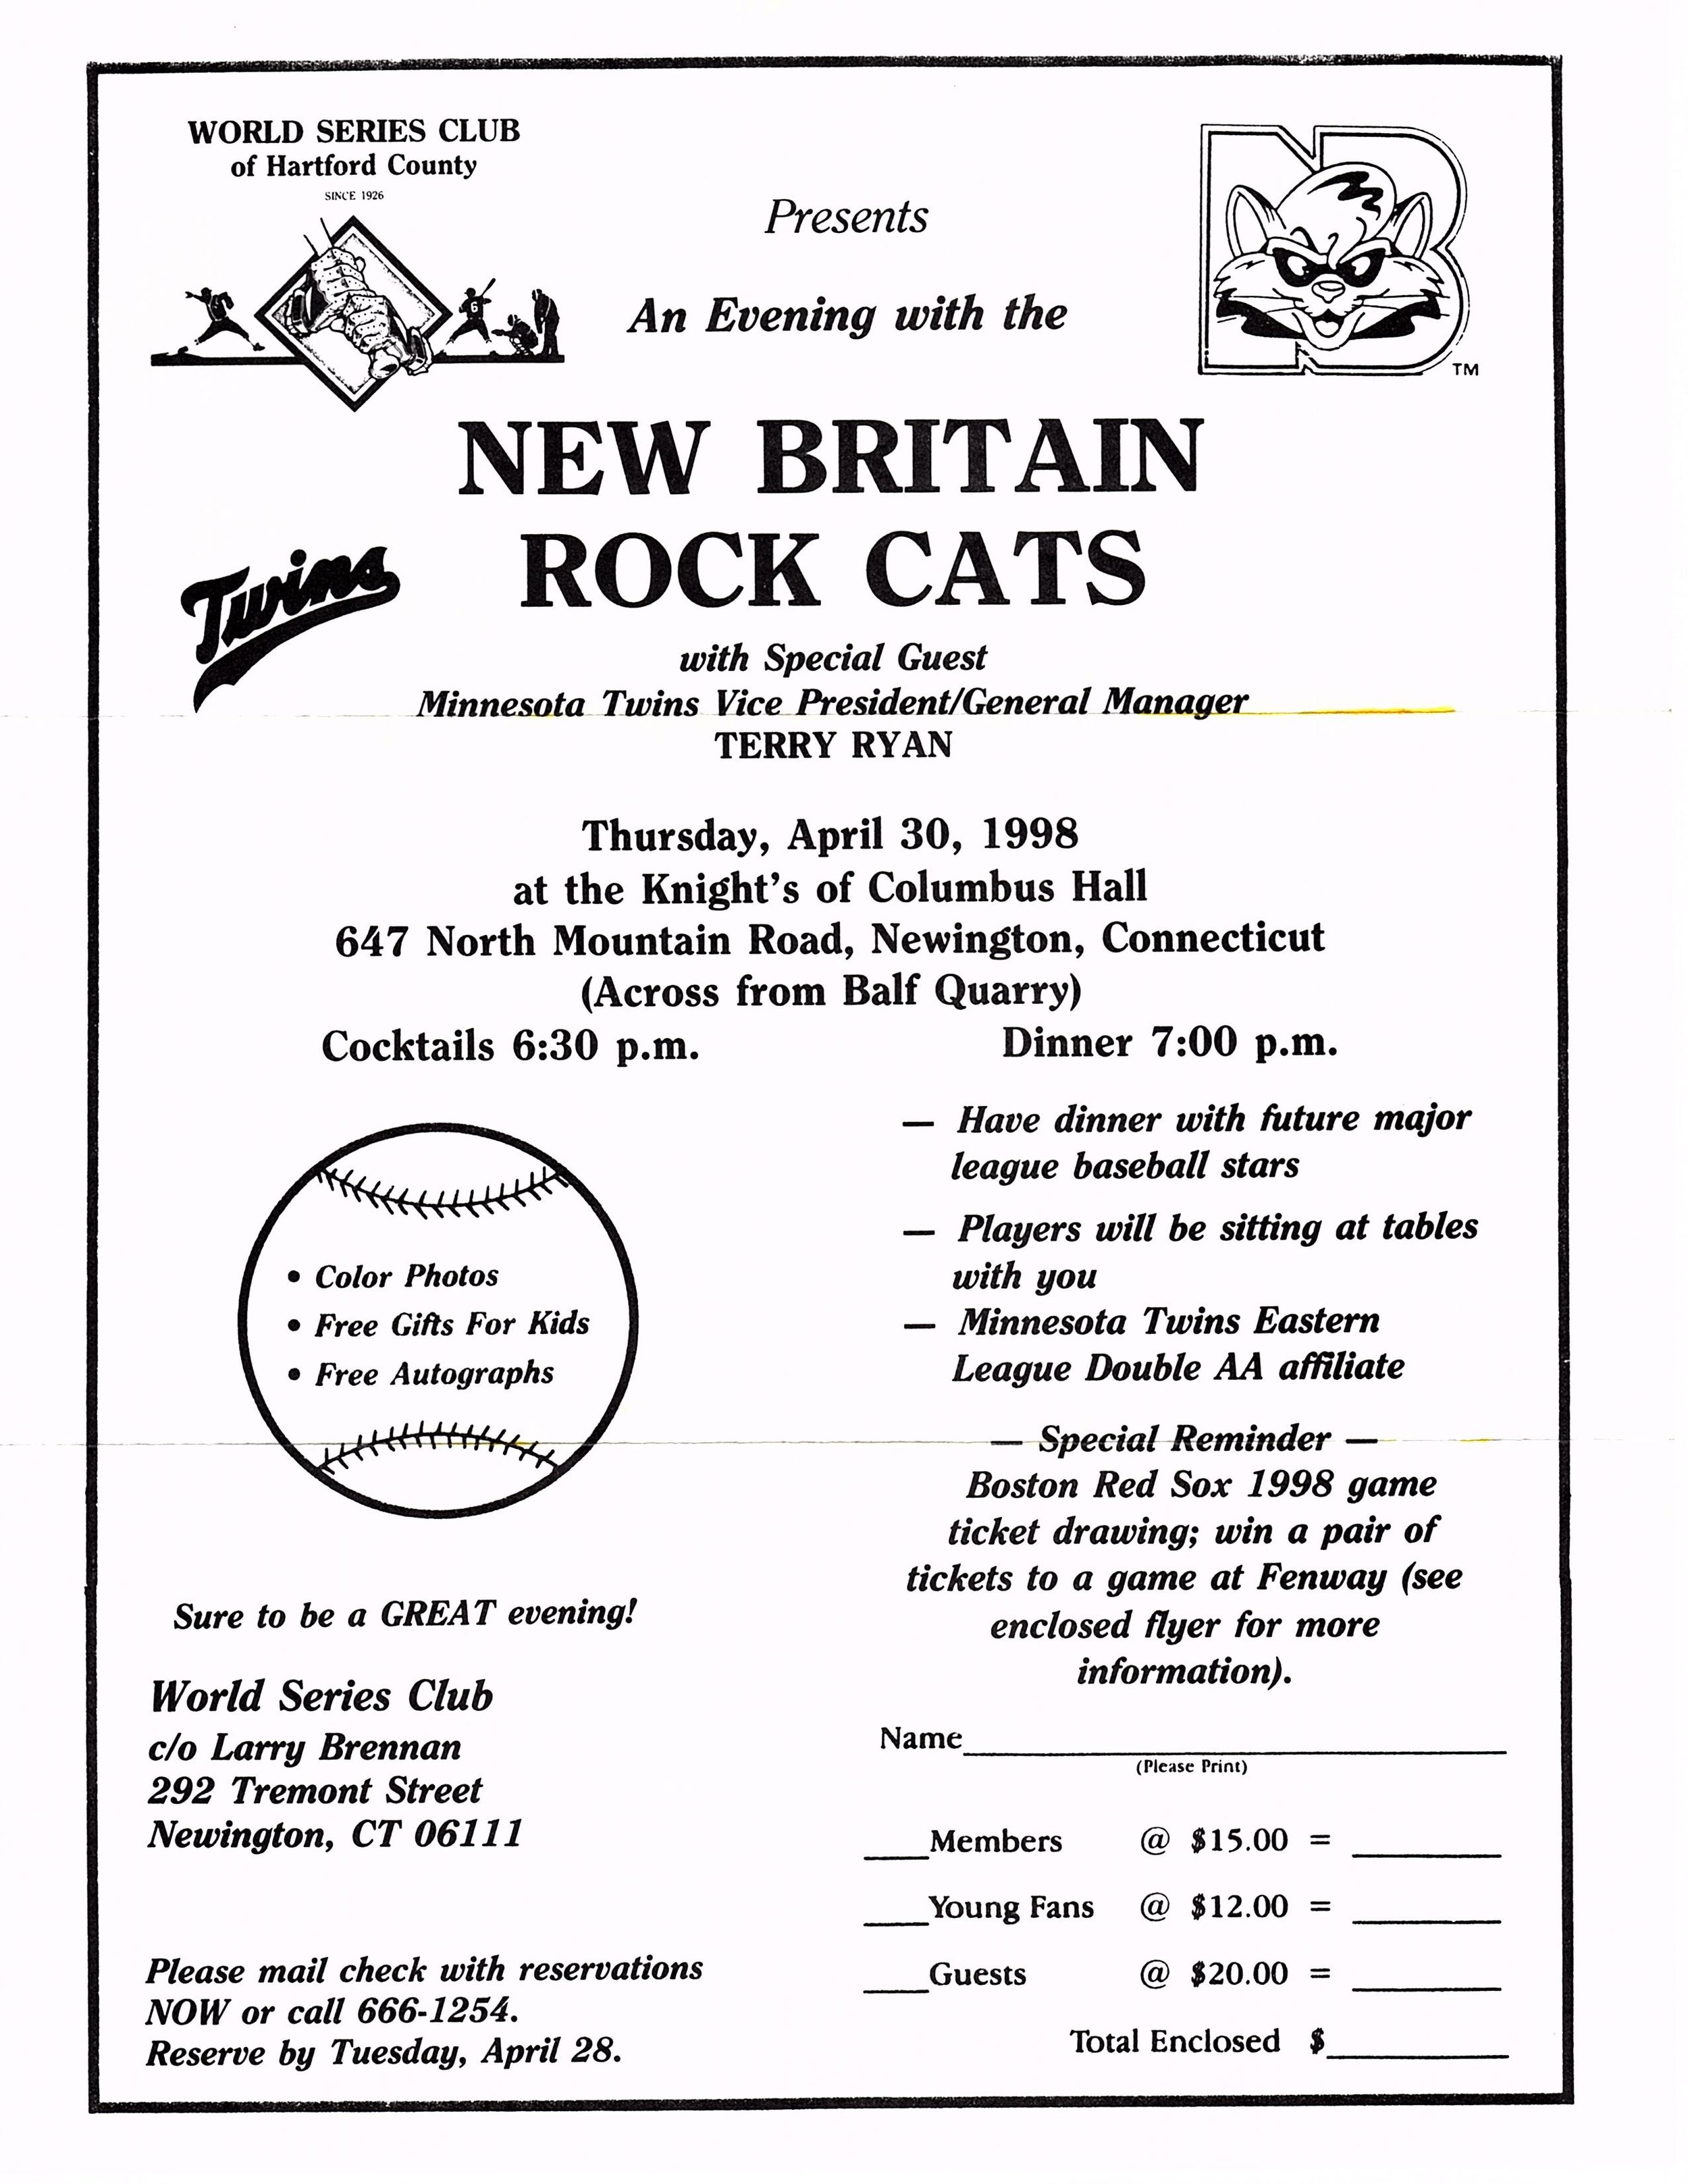 19980430 New Britain Rock Cats.jpg